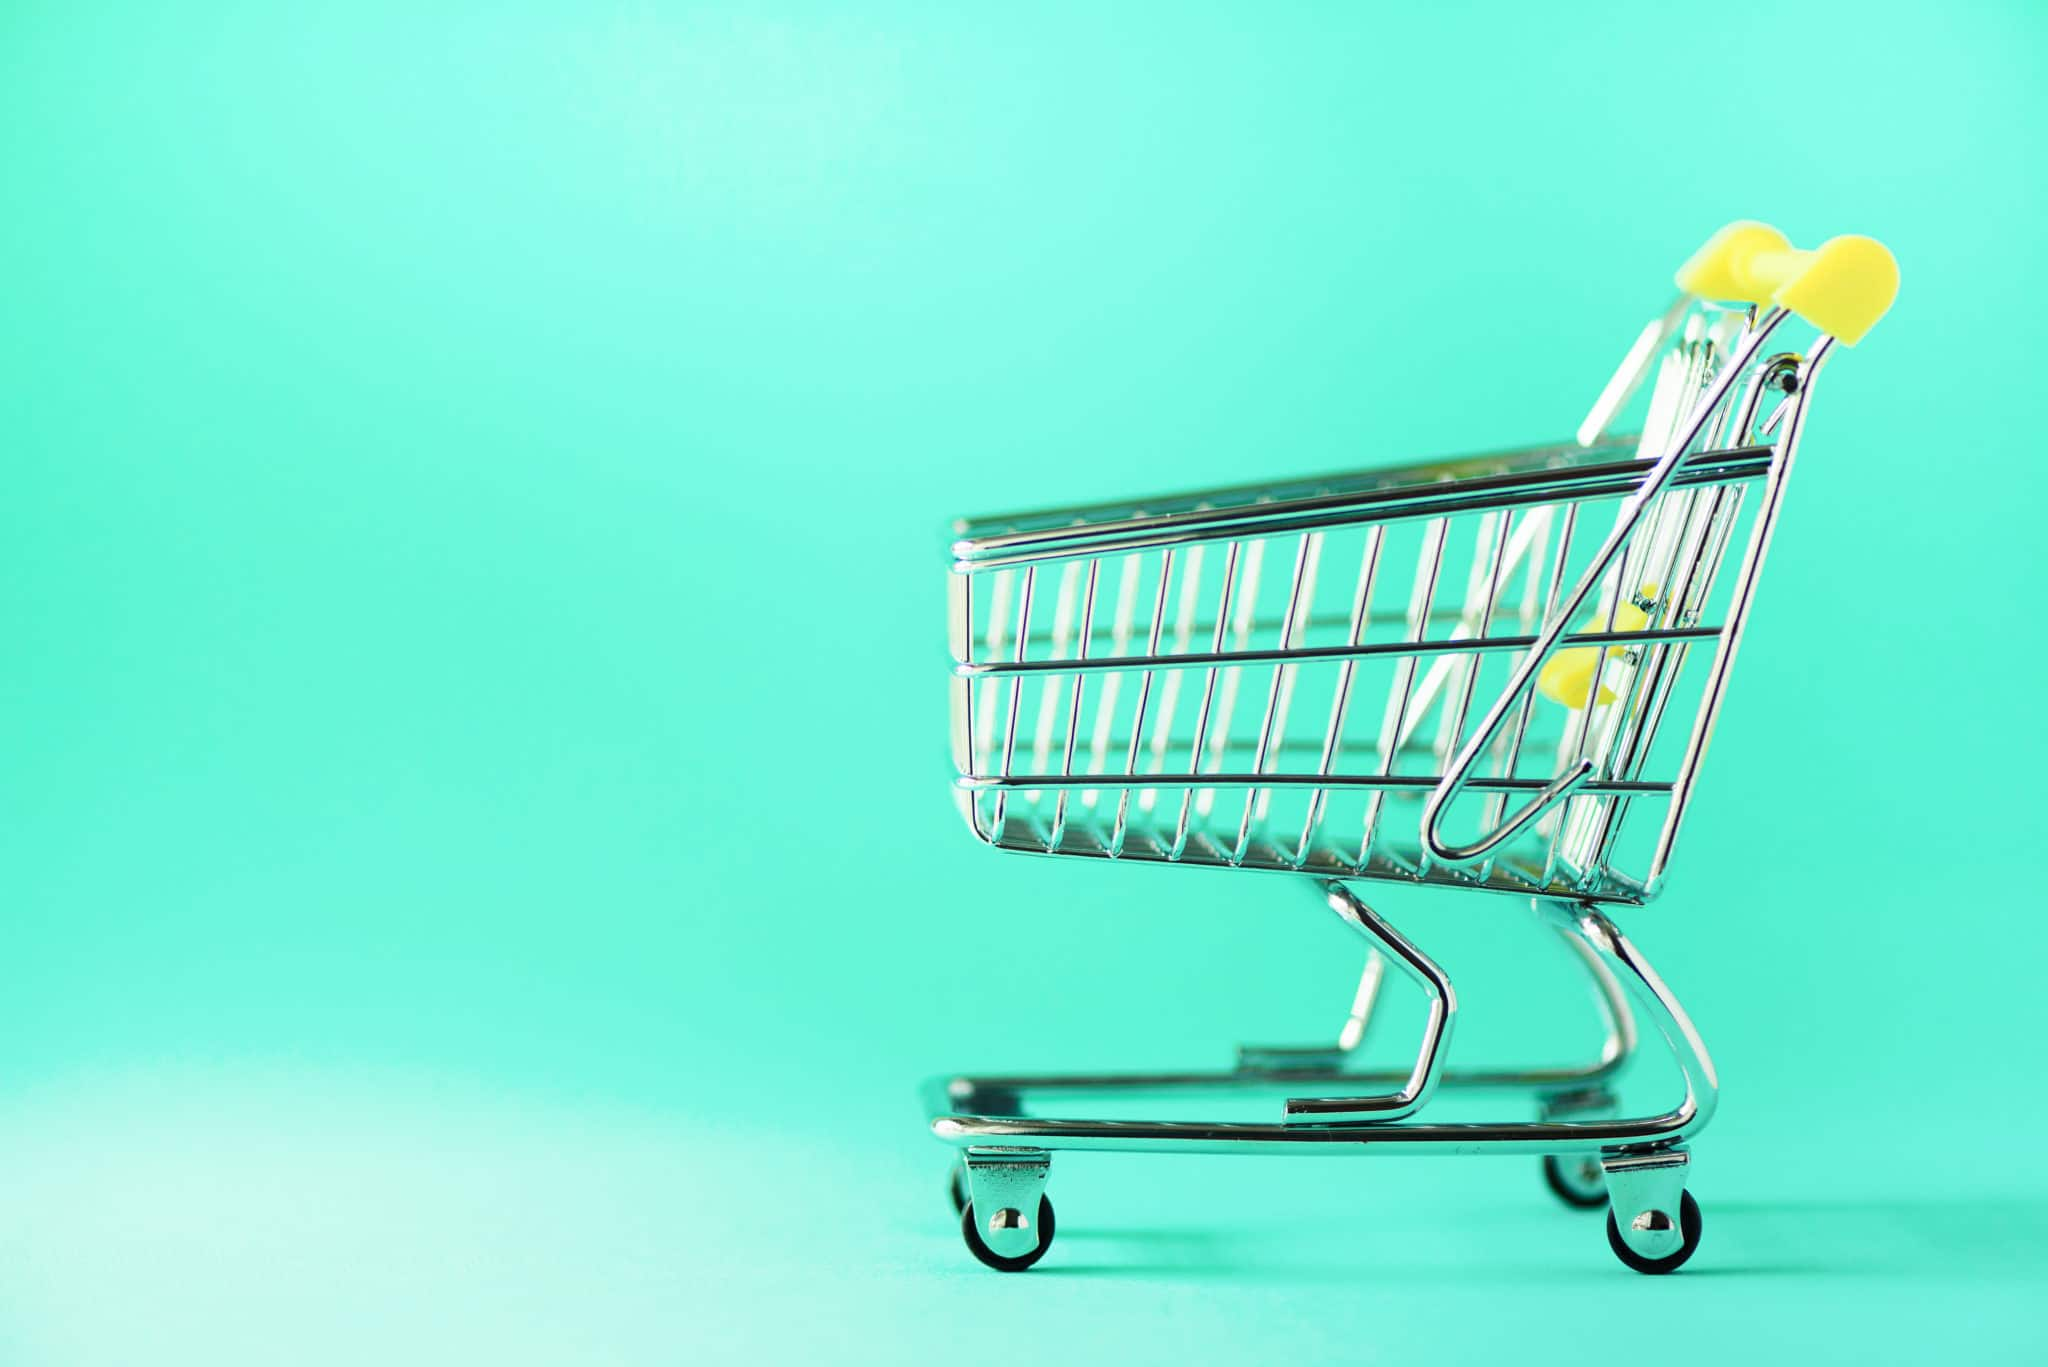 Shopping cart on blue background. Minimalism style. Creative design. Copy space. Shop trolley at supermarket. Sale, discount, shopaholism concept. Consumer society trend.